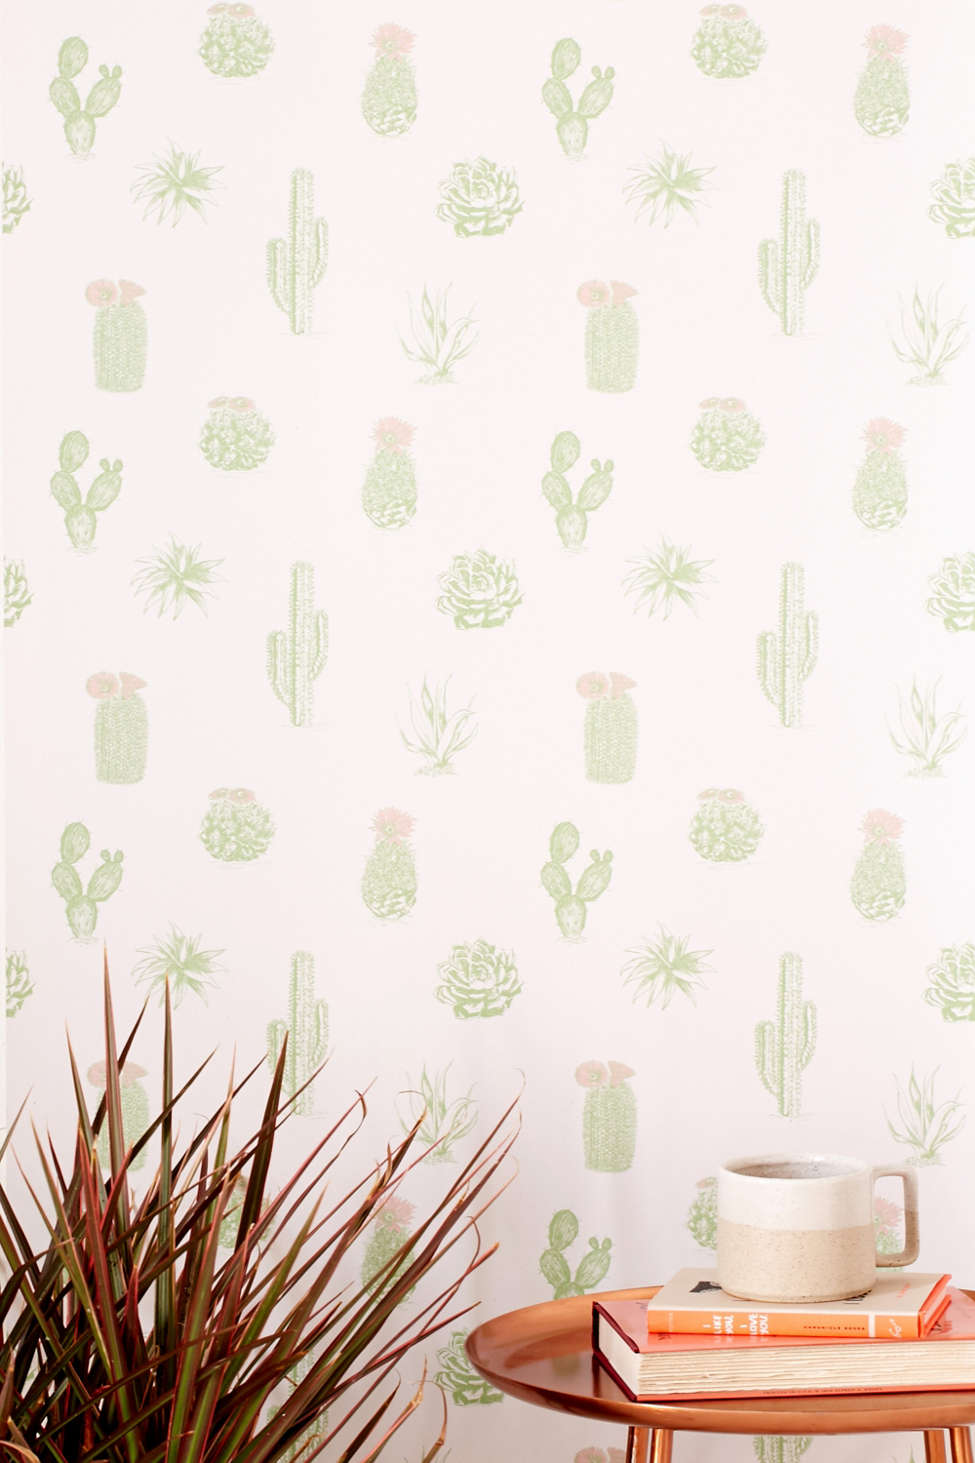 Removable Wallpaper cactus icon removable wallpaper   urban outfitters